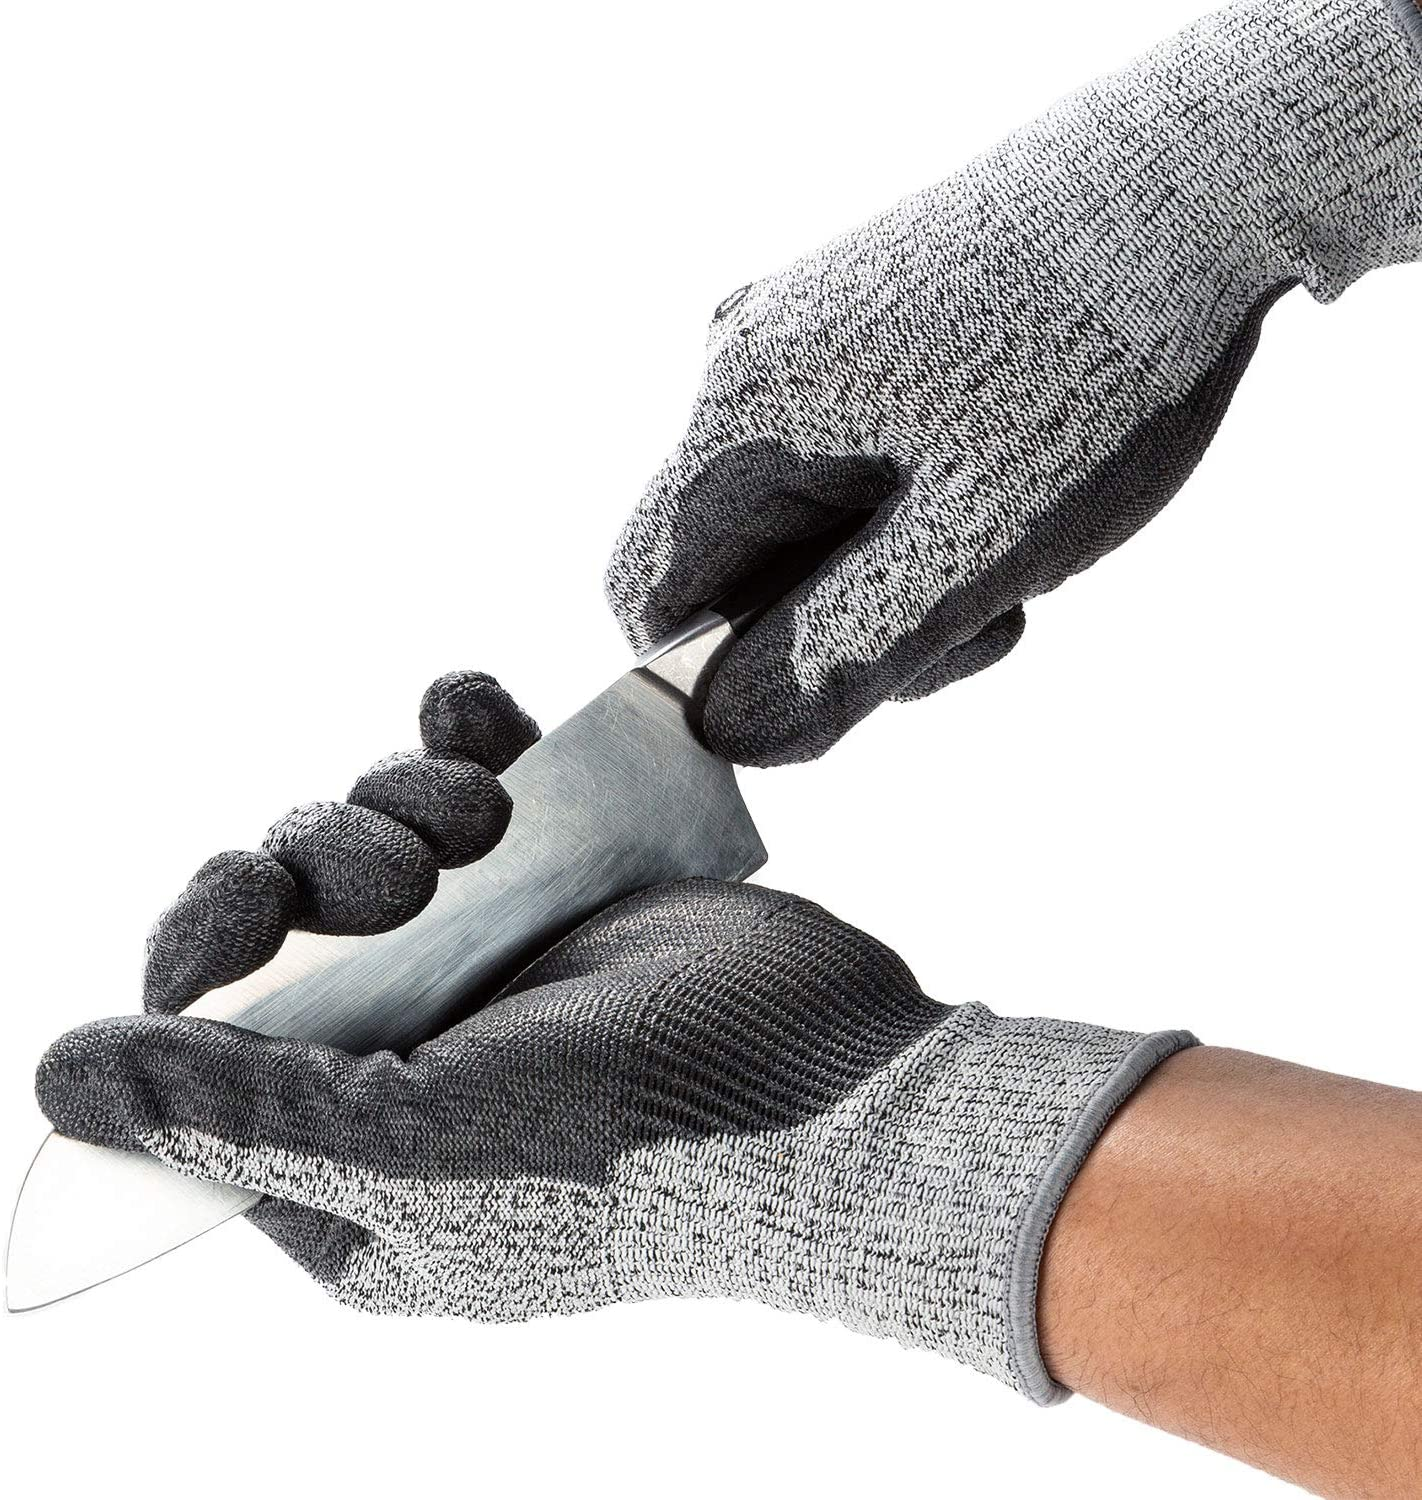 Vgo 2-Pairs Level 5 Cut Resistant Gloves EN388 Certified Hand Protection Gloves (Size M, Grey, SK2131)